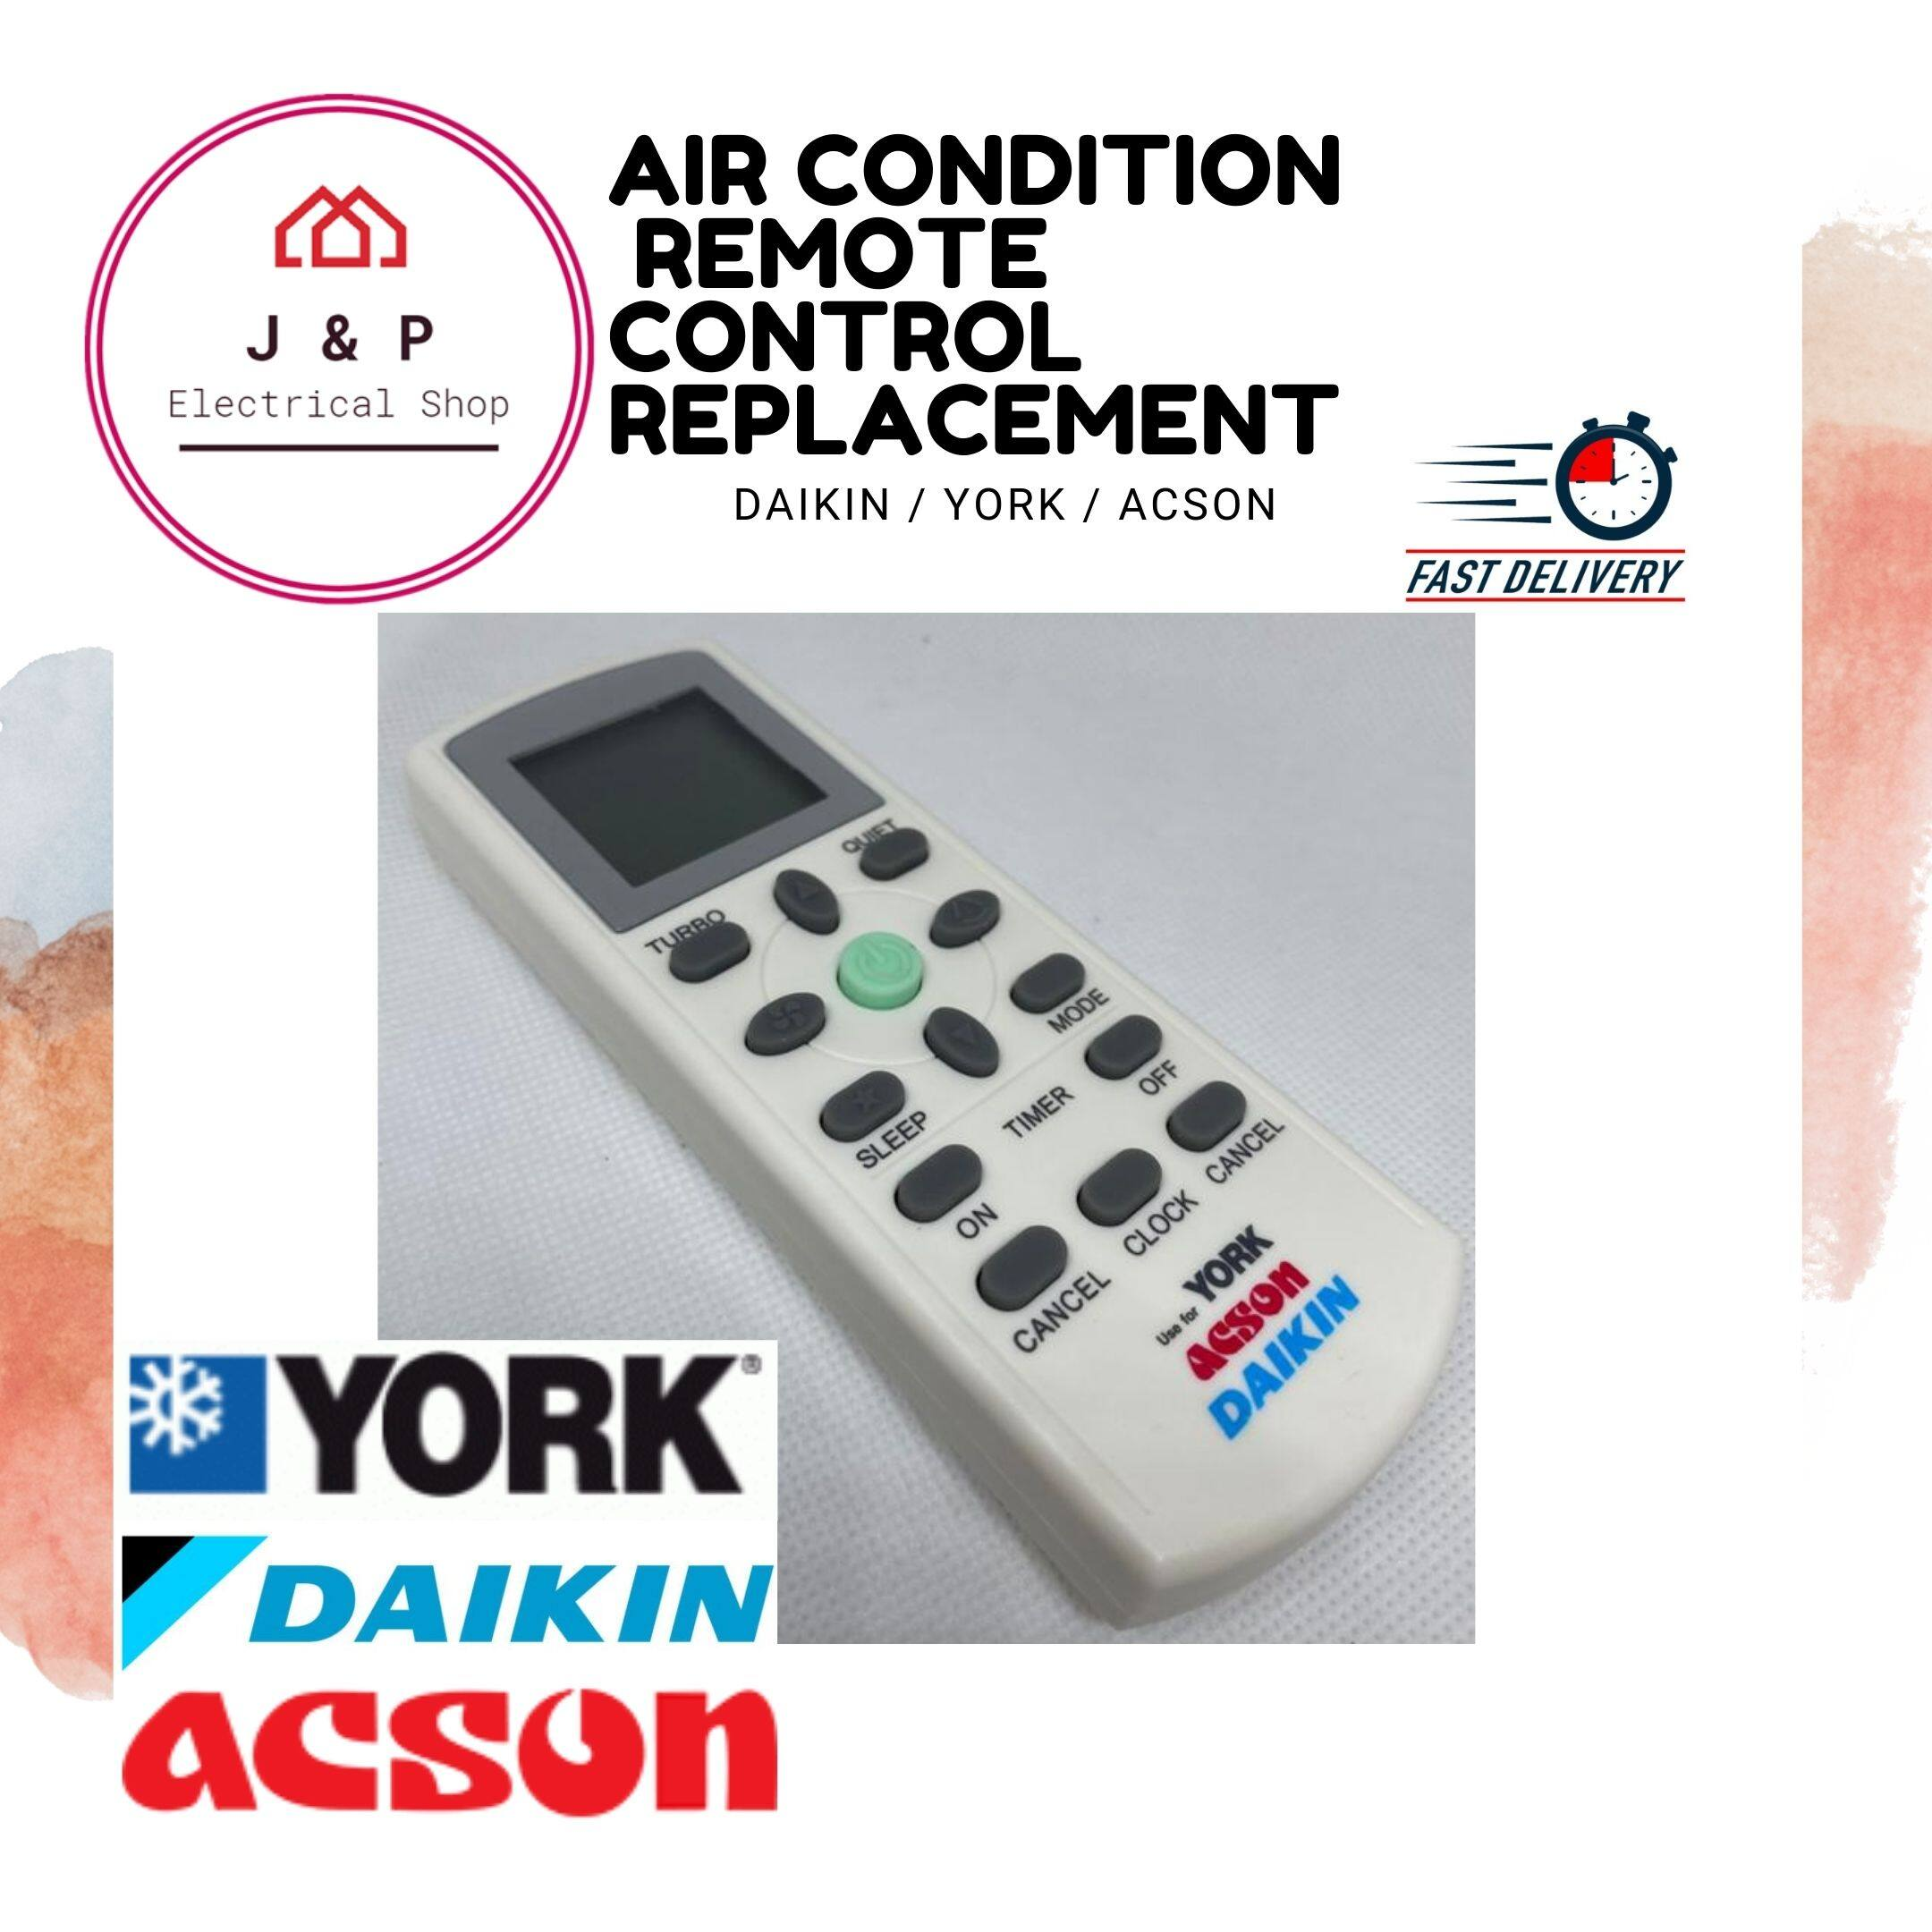 YORK /DAIKIN/ ACSON Air-Condition Remote Control Replacement ( OEM Product) [Ready Stock 现货]1569760781-1603614671323-0